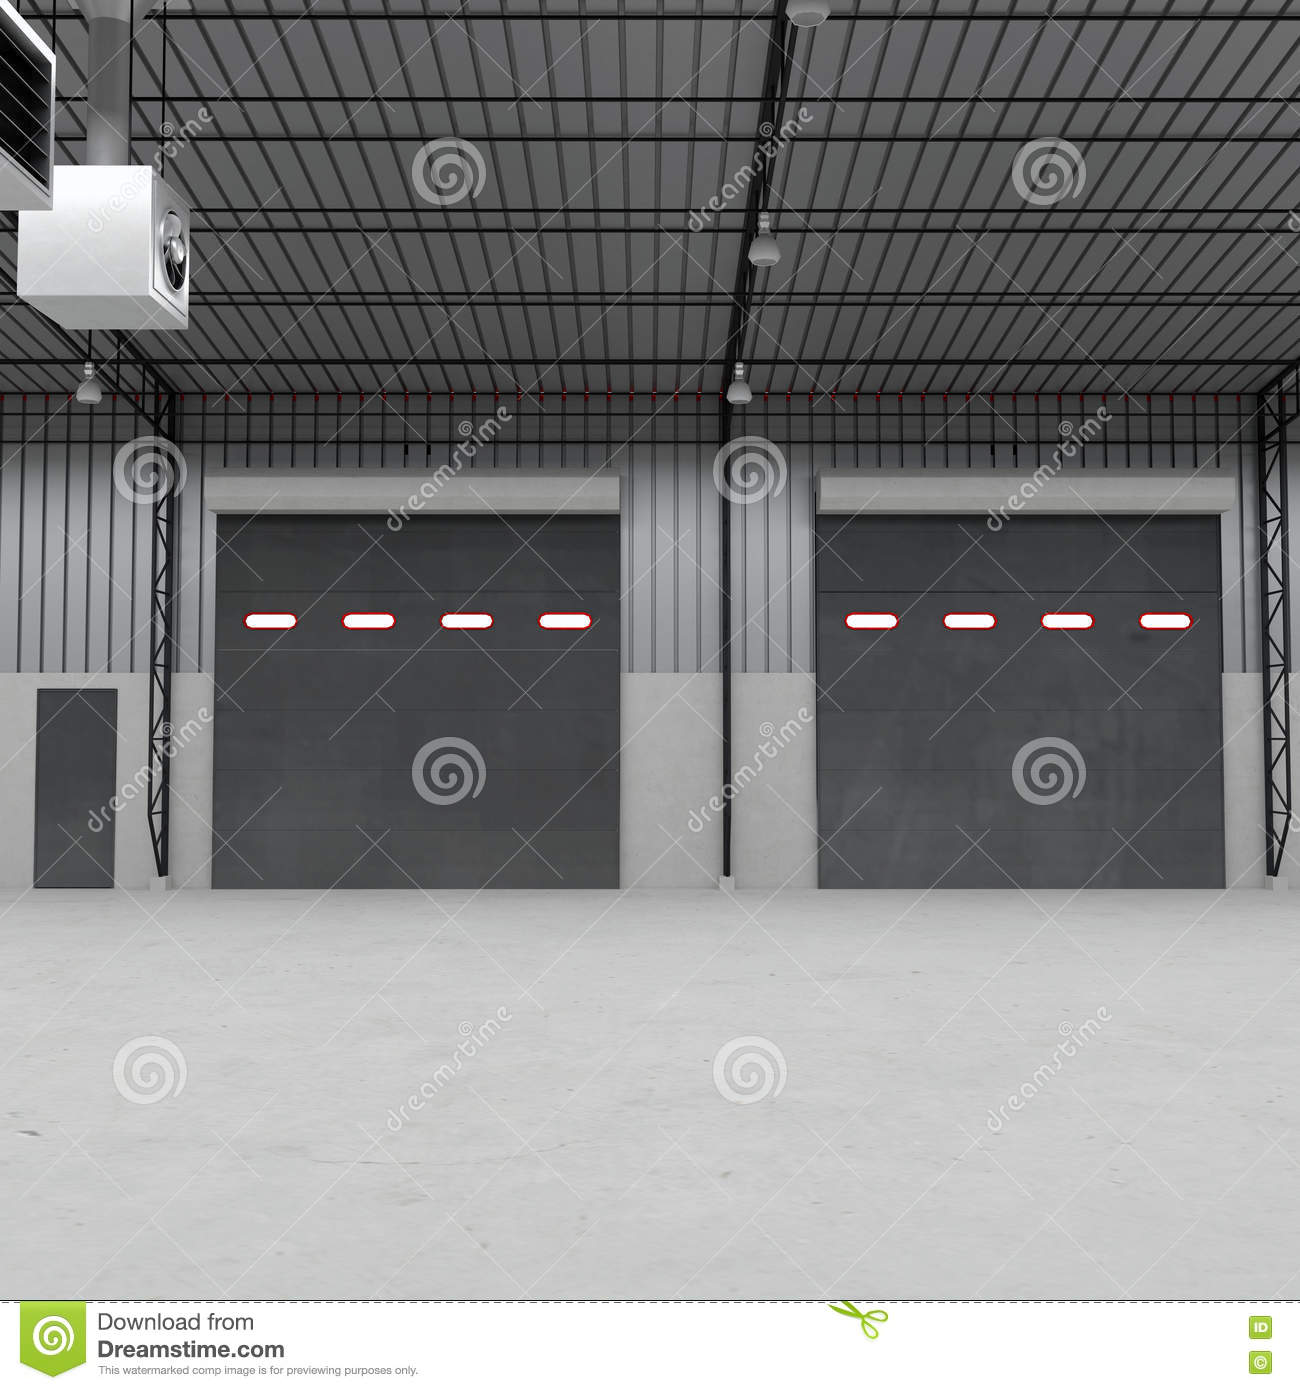 Shutter doors or roller door and concrete floor inside factory shutter doors or roller door and concrete floor inside factory building 3d illustration rubansaba